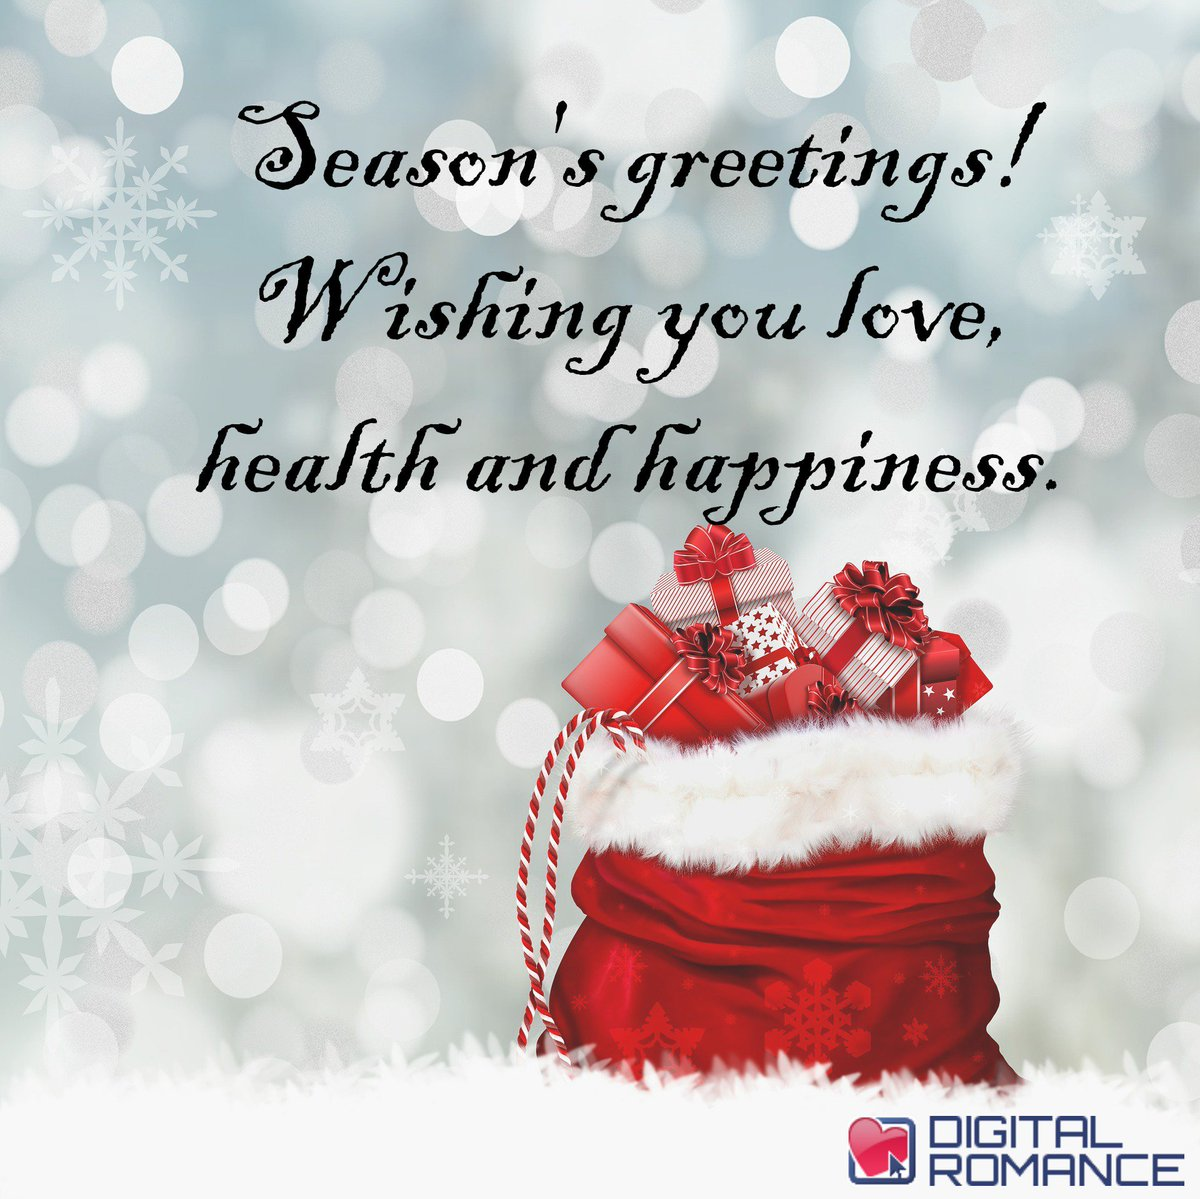 Digital Romance Inc On Twitter Seasons Greetings Wishing You